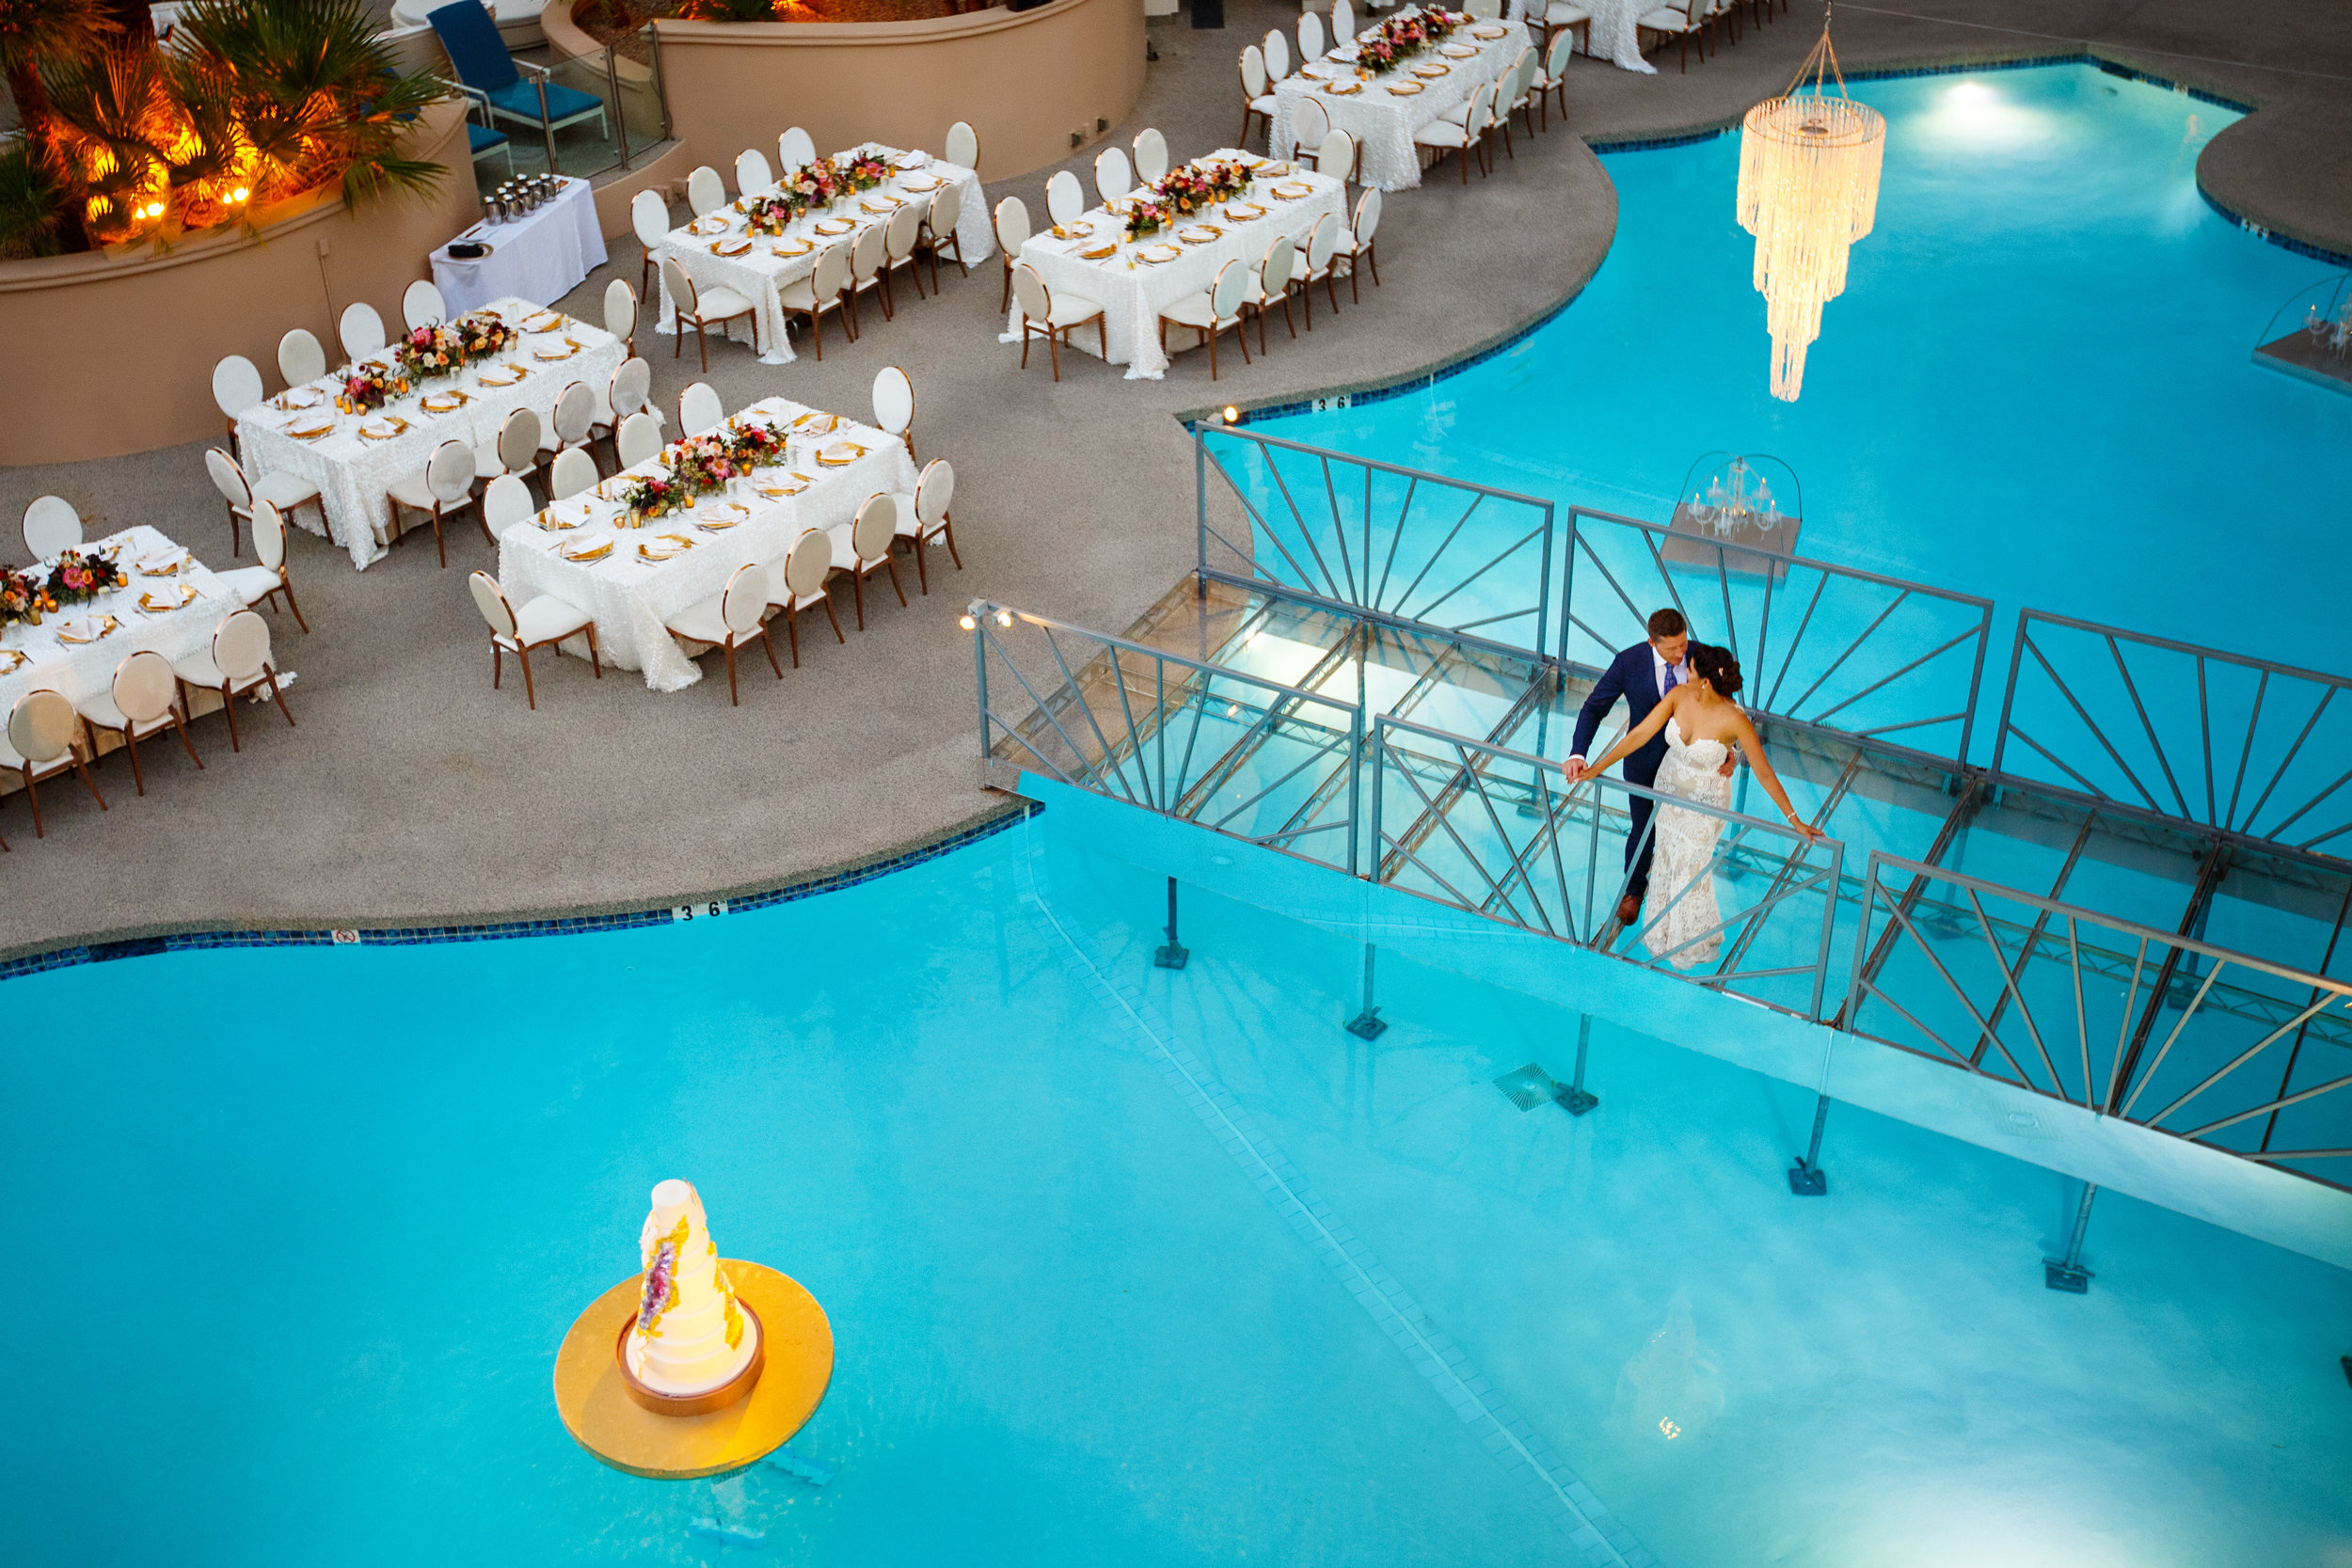 Bride & Groom on bridge over pool. Jewel toned wedding centerpieces with gold accents.Wedding Planning by  Andrea Eppolito Events  · Photography by  Shandro Photo   · Wedding Venue  Four Seasons Las Vegas  · Floral and Decor by  Destination by Design  · Cake by  Four Seasons Las Vegas  · Chandeliers and Lighting by  LED Unplugged  · Dress by  Berta  and Menu by Alligator Soup